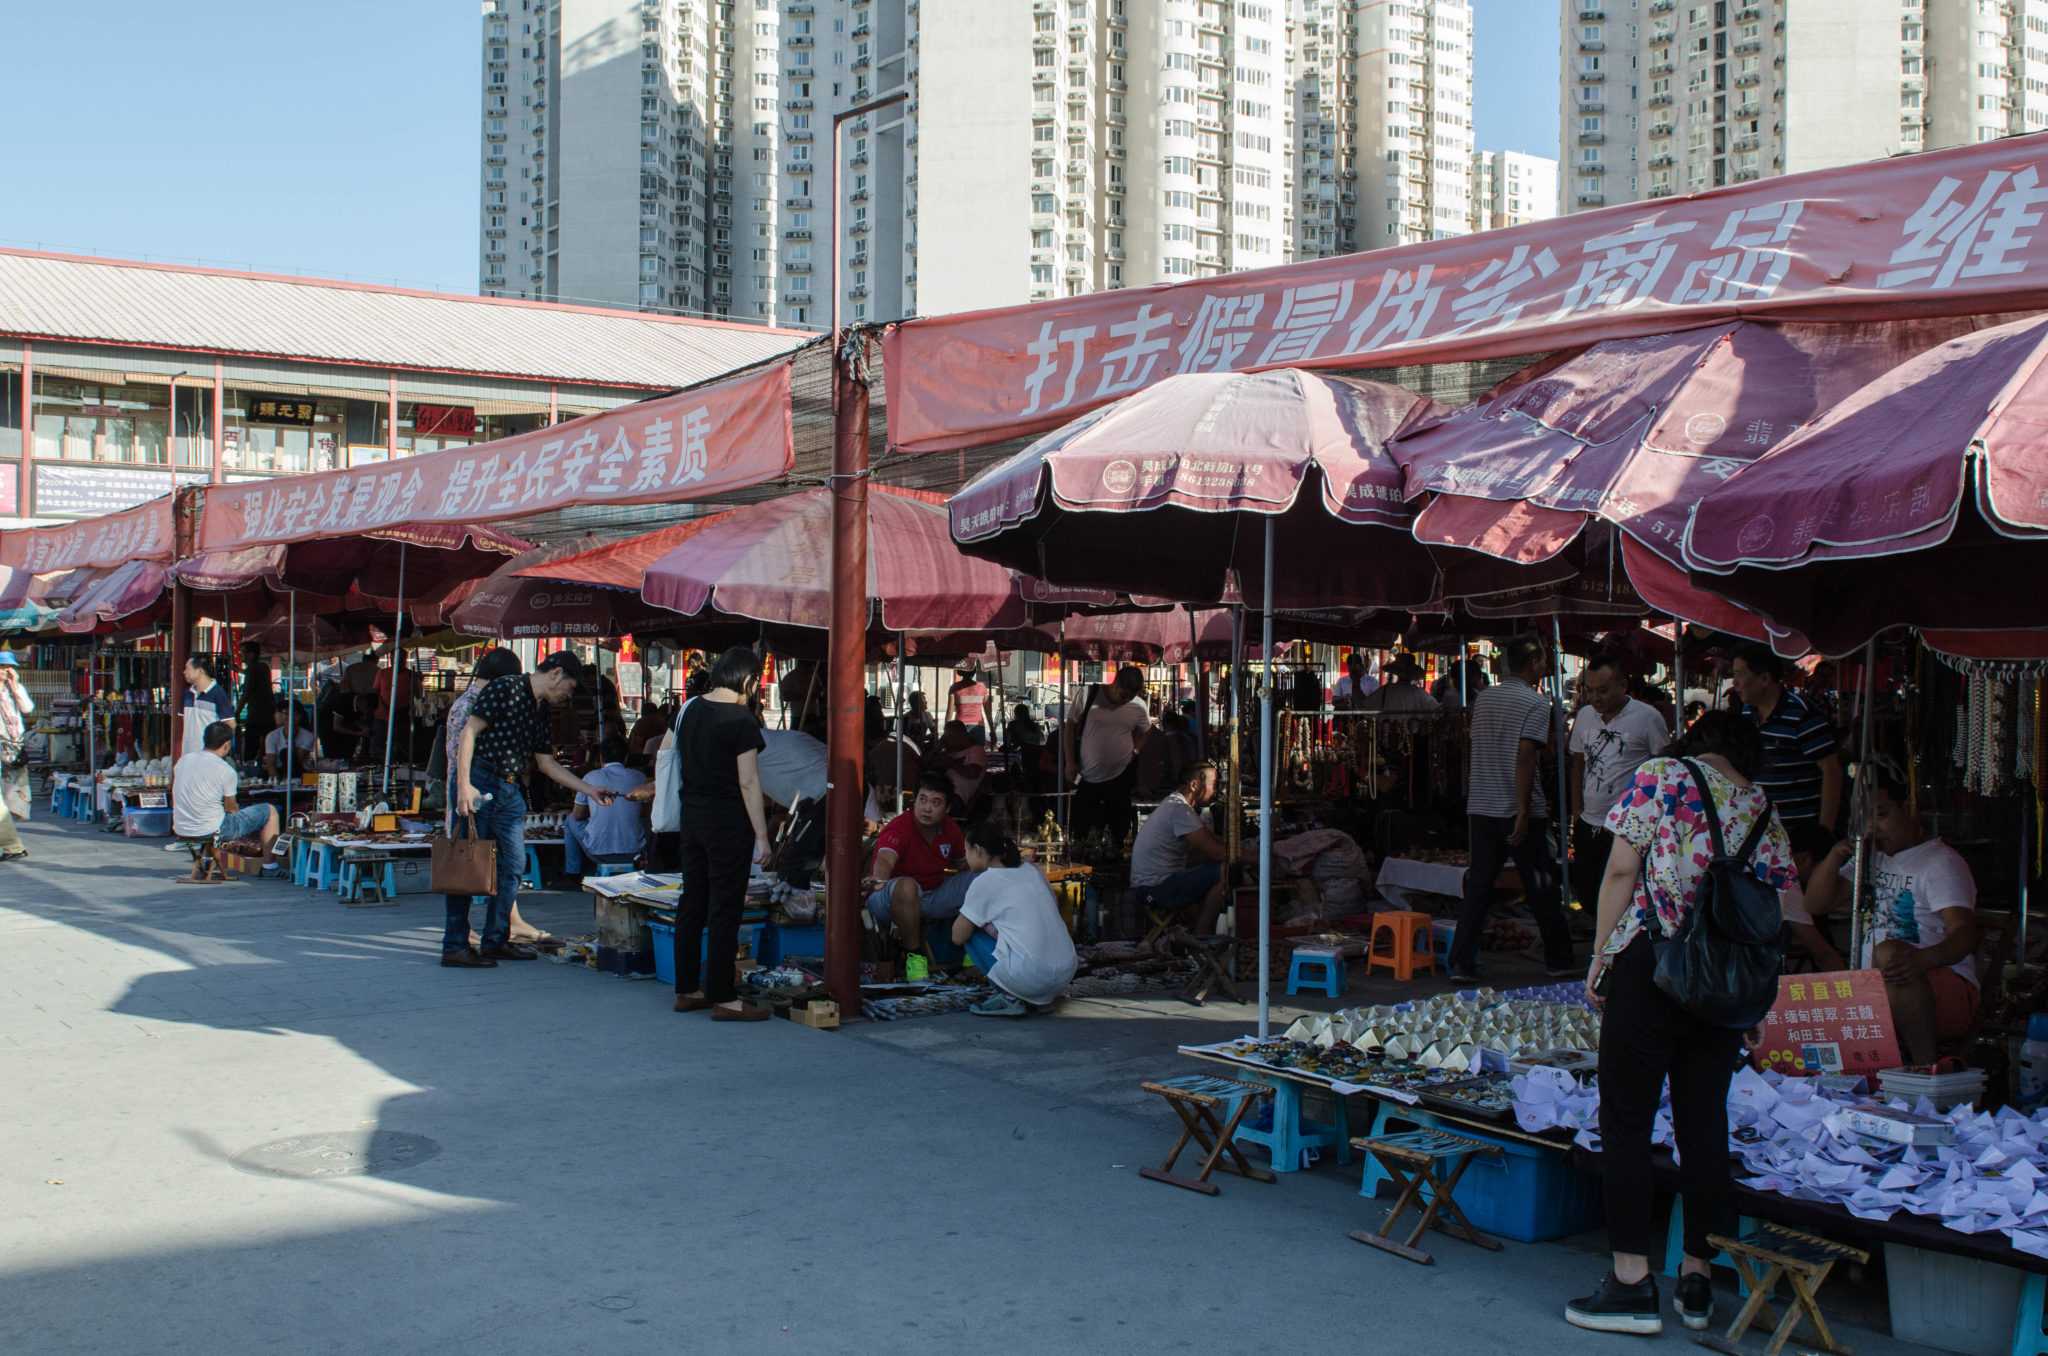 The Panjiayuan Antique Market in Beijing: The stalls are covered during the midday heat